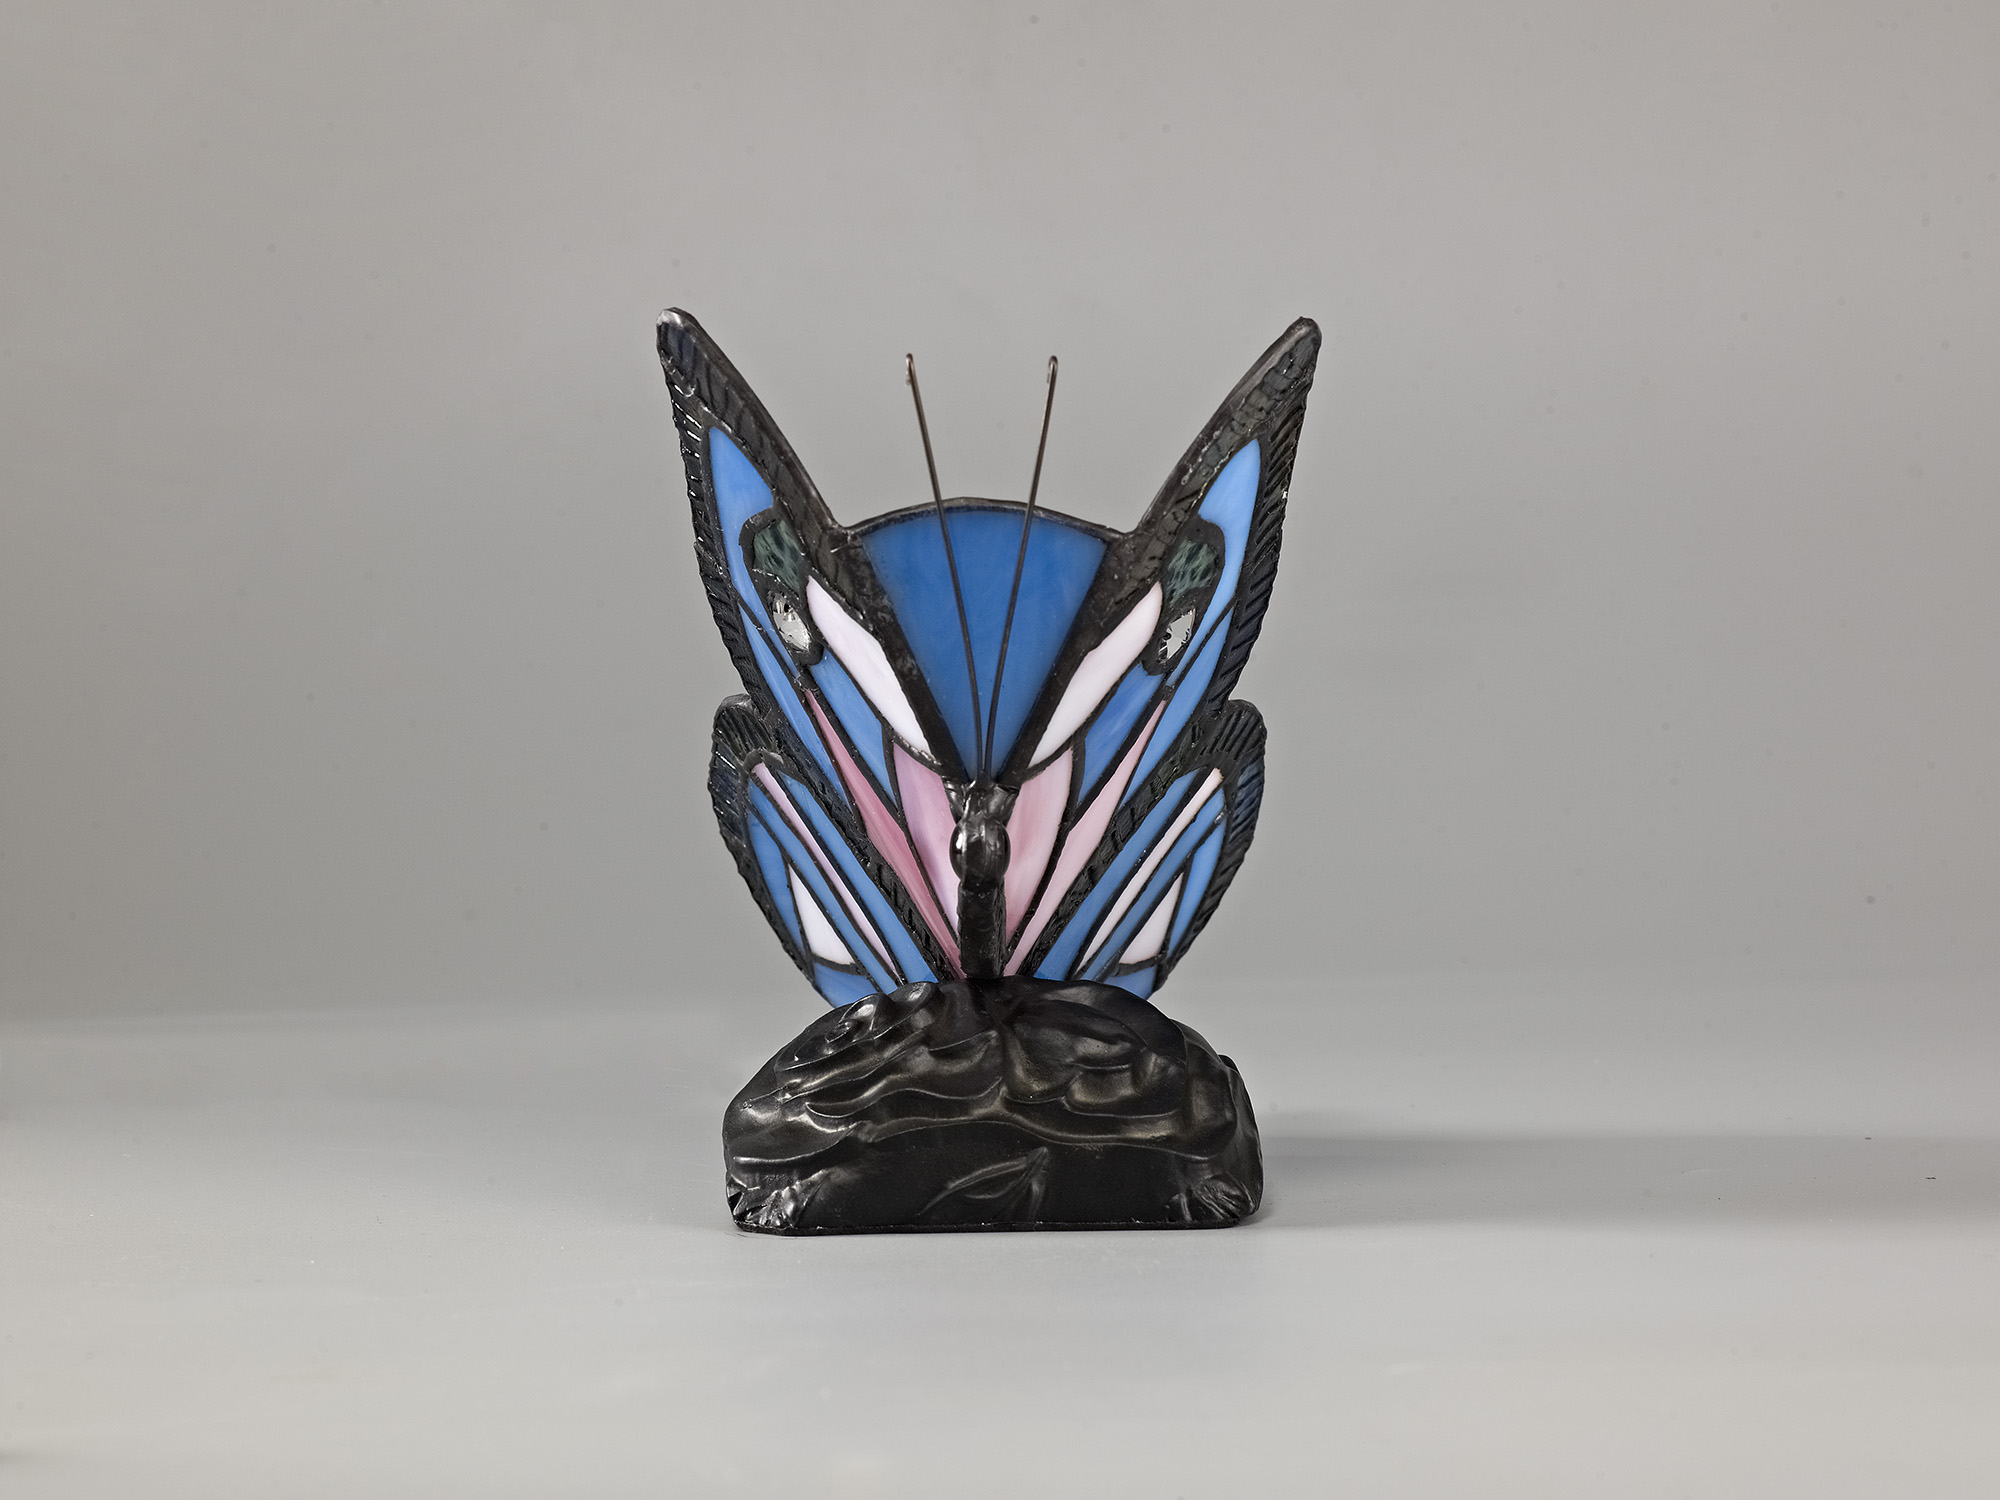 Tiffany Butterfly Table Lamp, 1 x E14, Black Base With Blue/Pink Glass With Clear Crystal